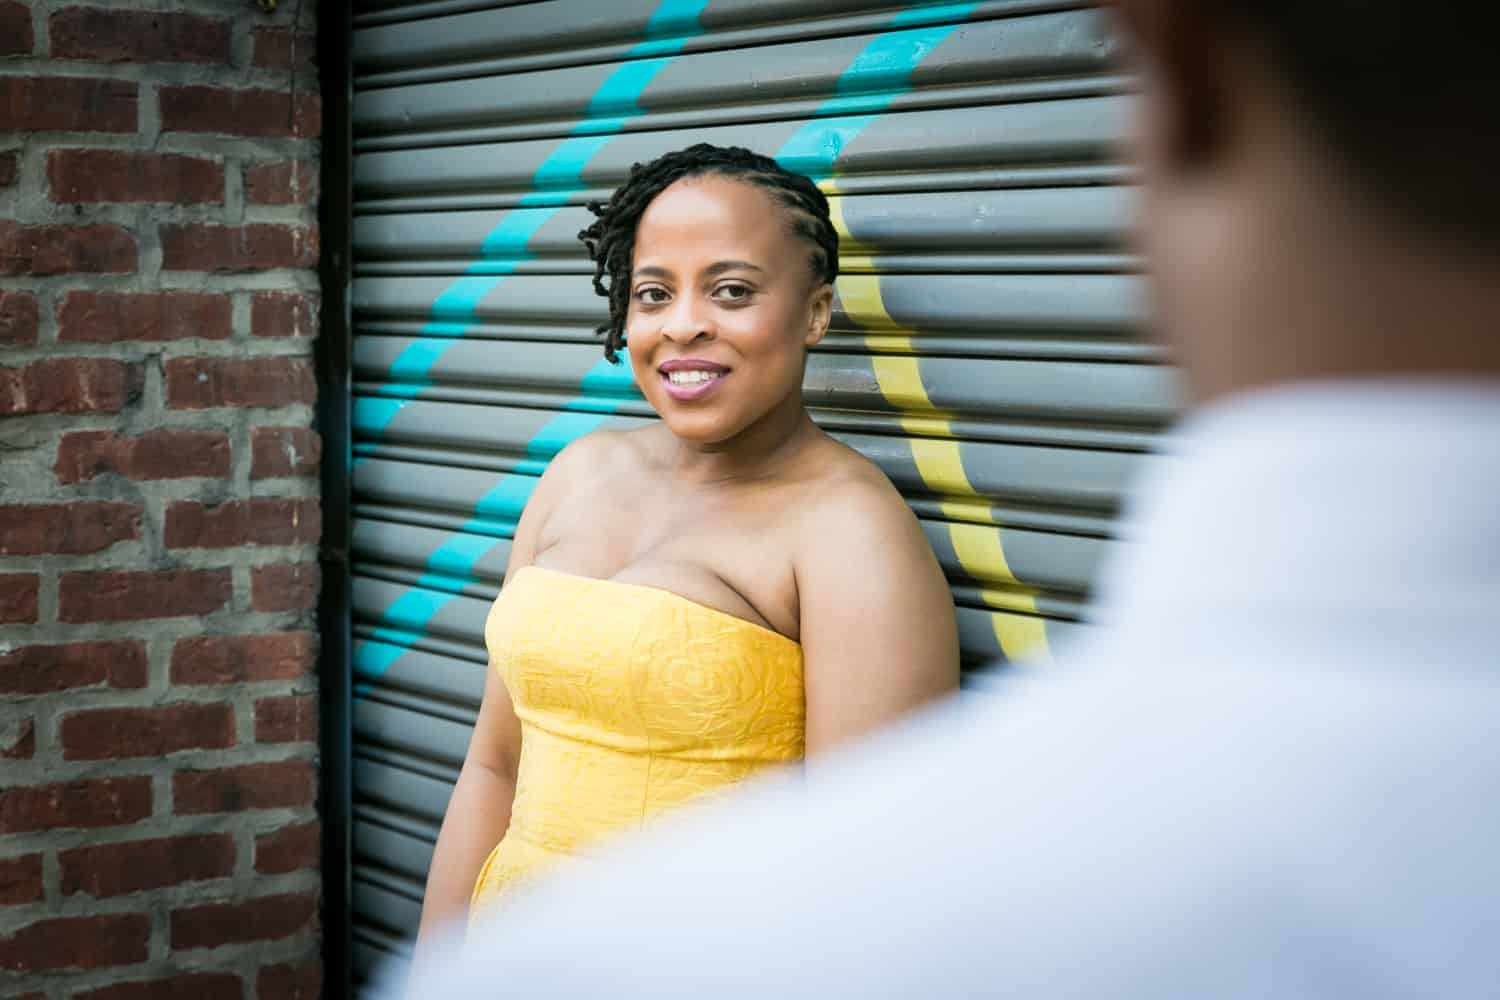 African American woman wearing strapless yellow dress looking at man